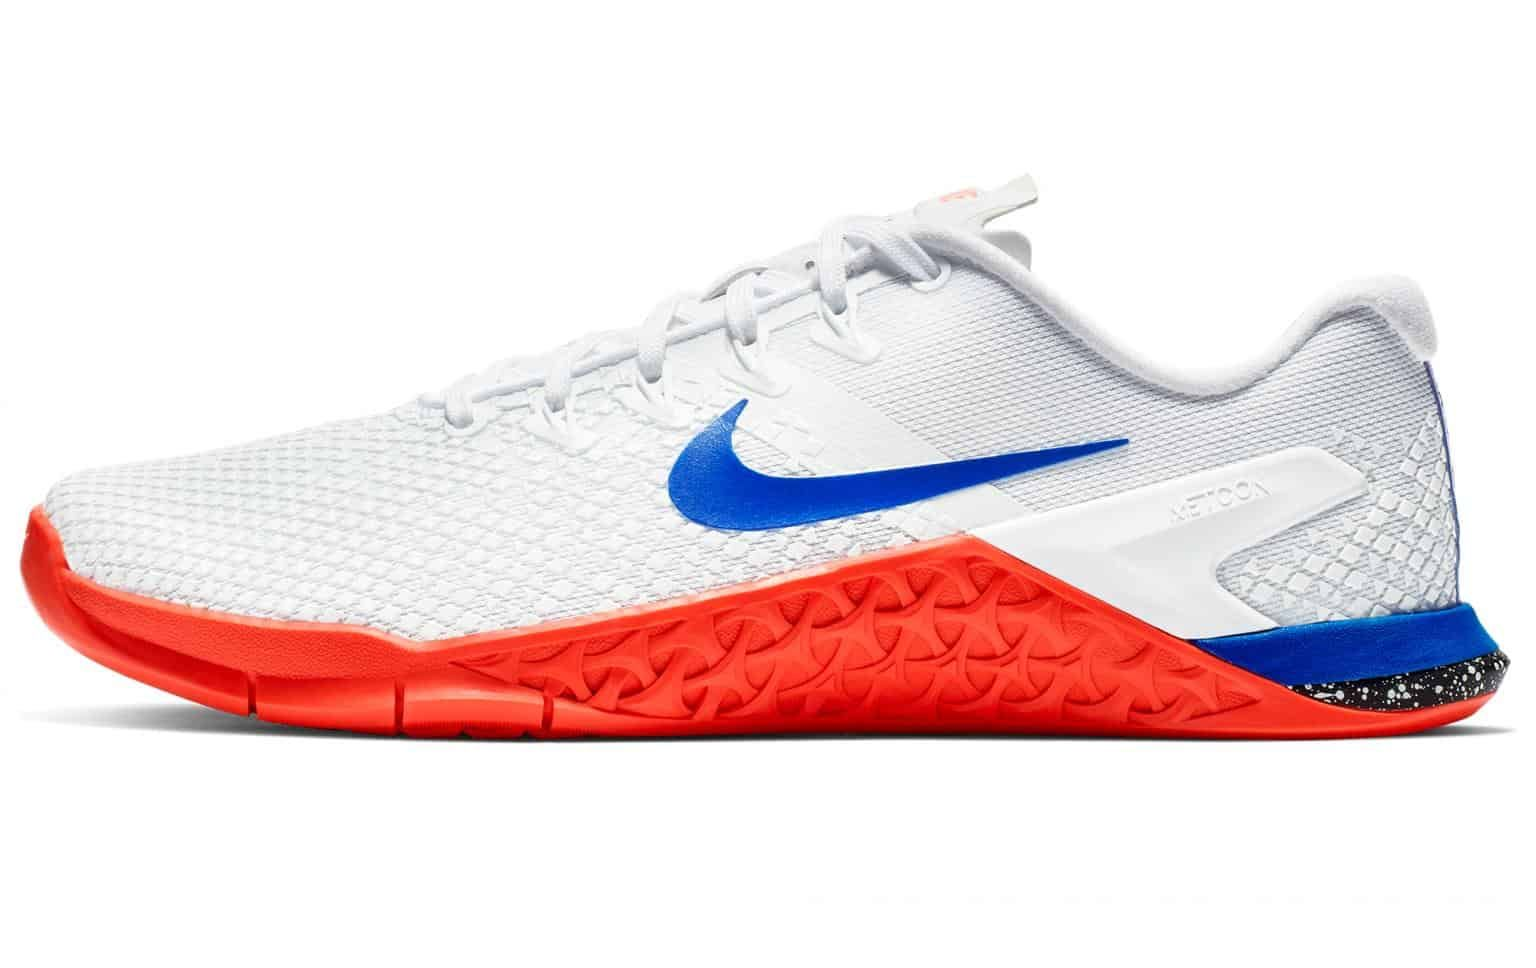 Nike Metcon 4 XD - new variant for 2019